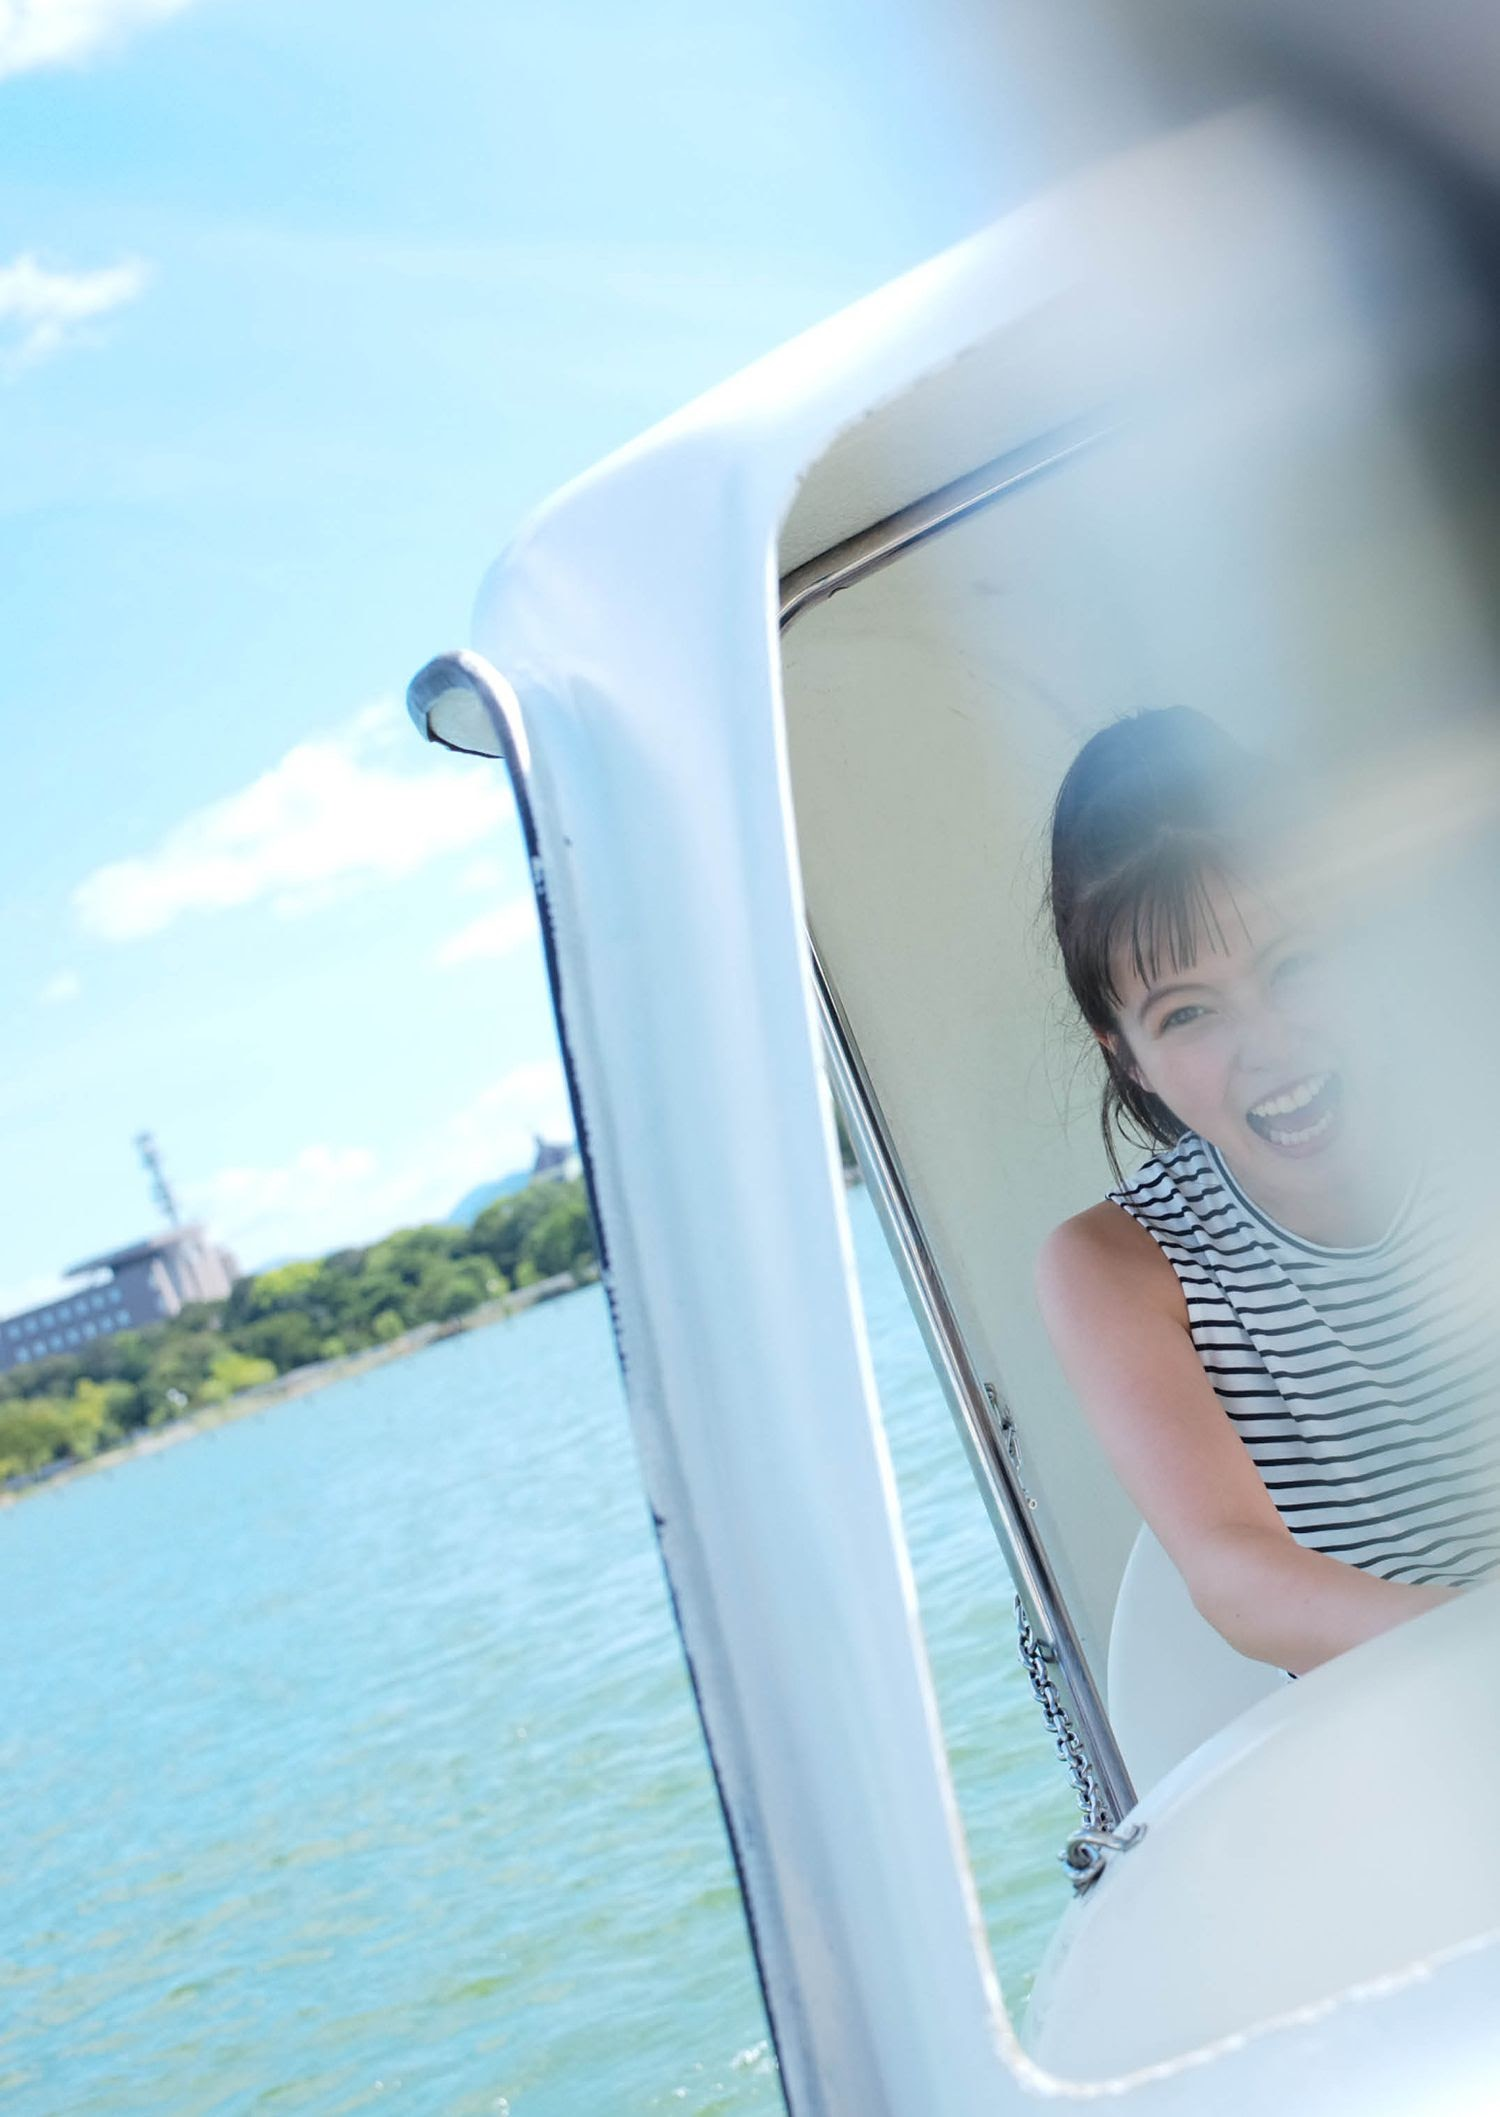 Without a doubt the youngest actress Mio Imada015